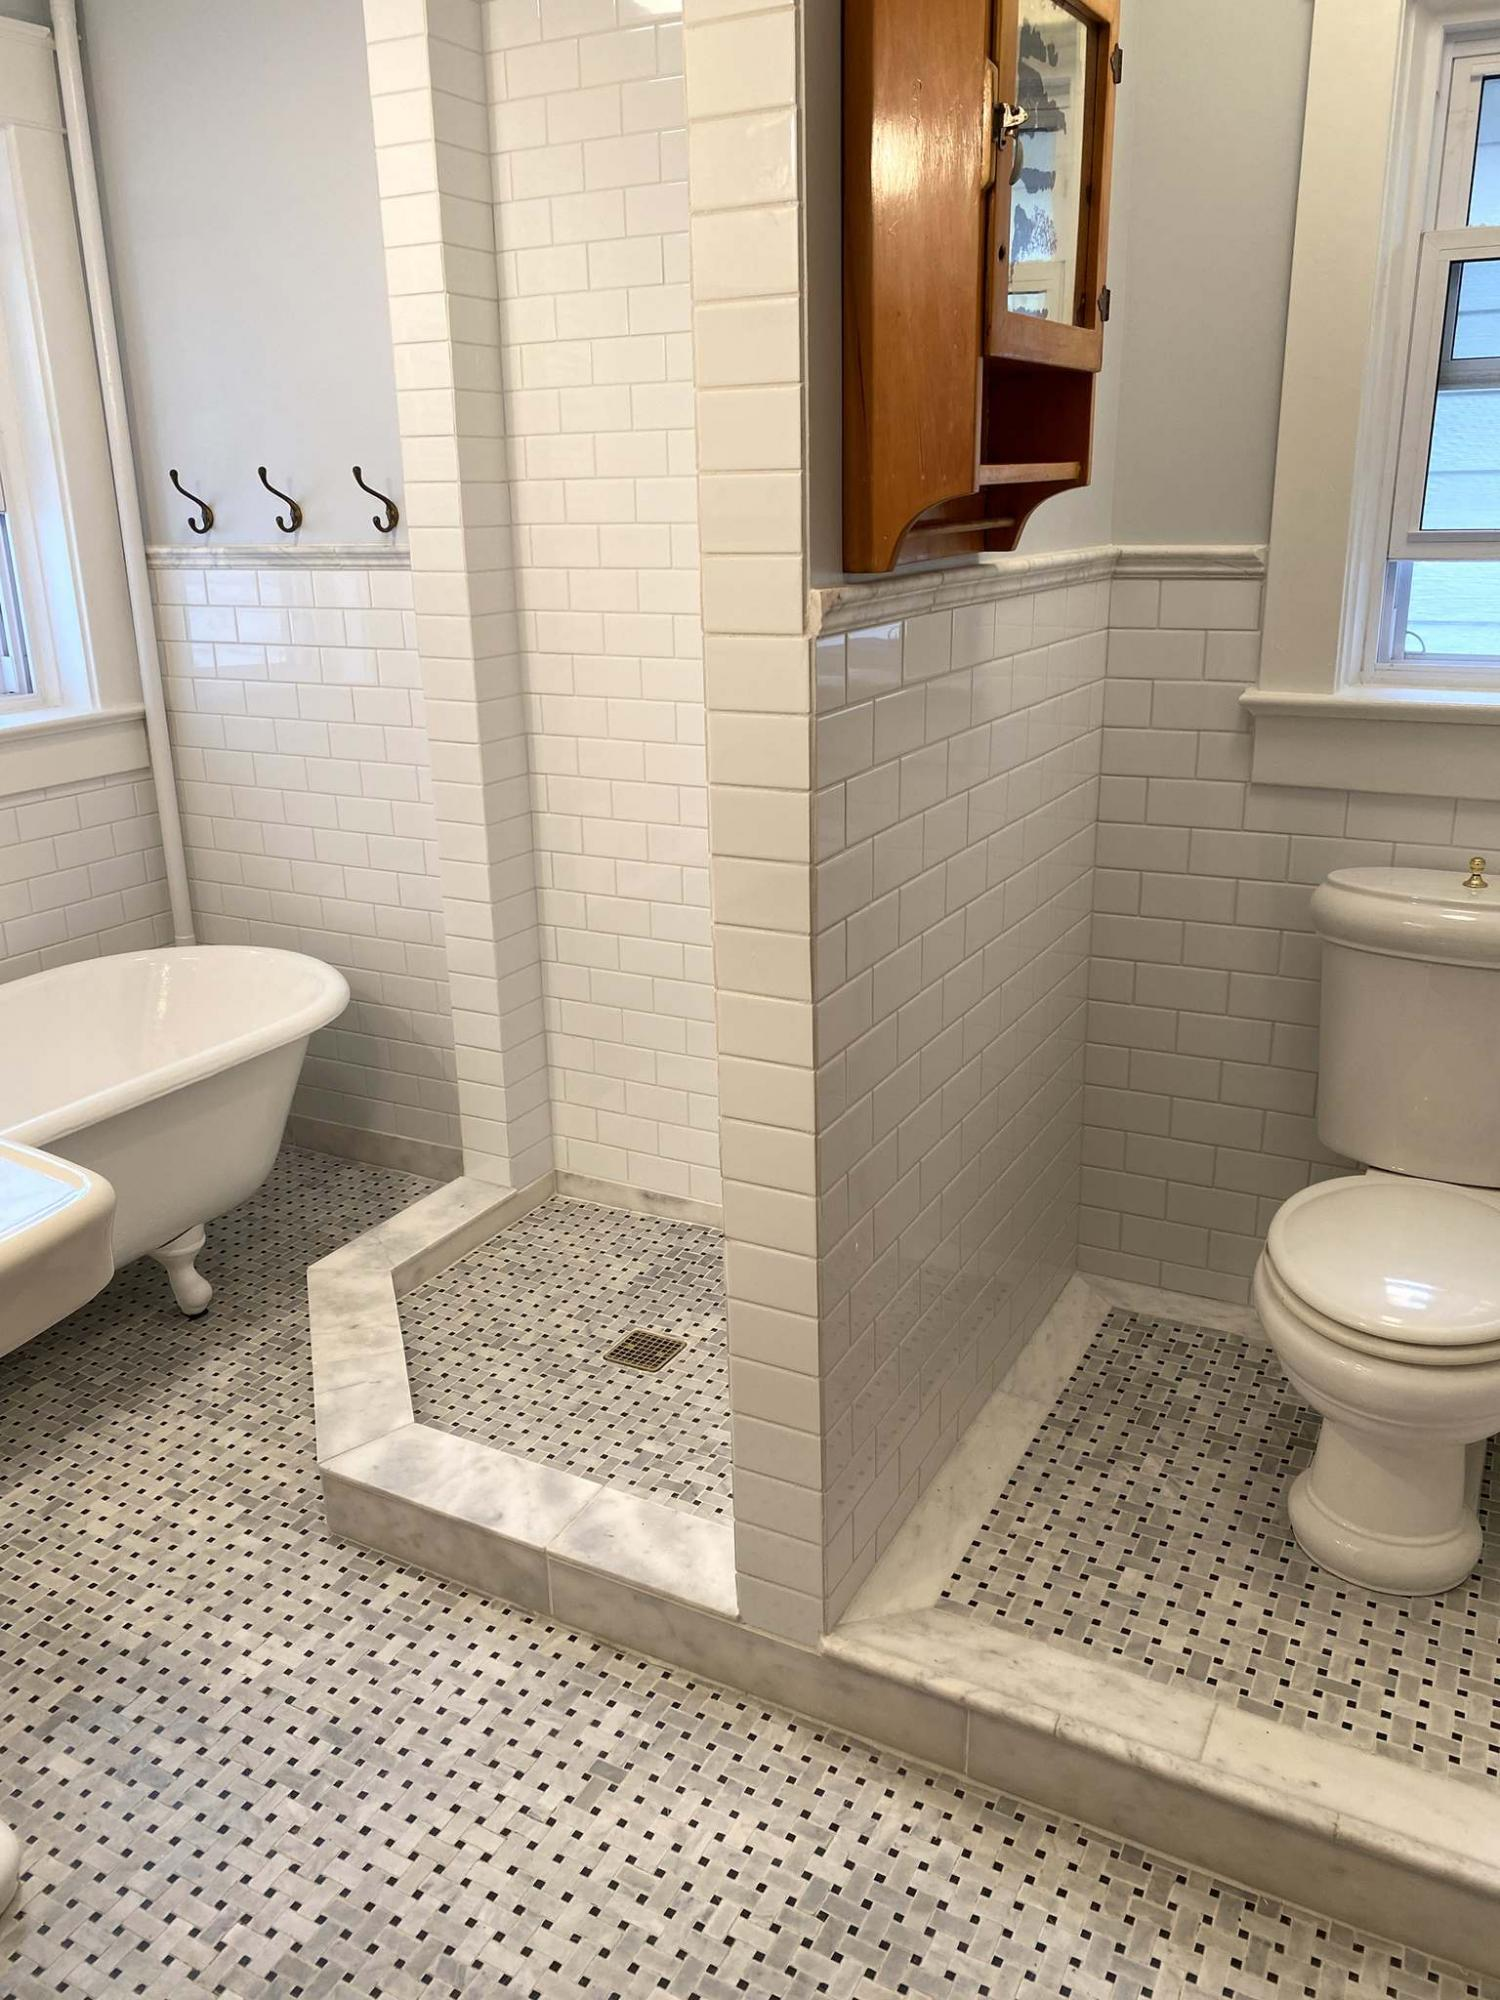 <p>Photos by Marc LaBossiere / Winnipeg Free Press</p><p>Tiling the water closet, which is higher than the main bathroom floor, presented a challenge. </p>